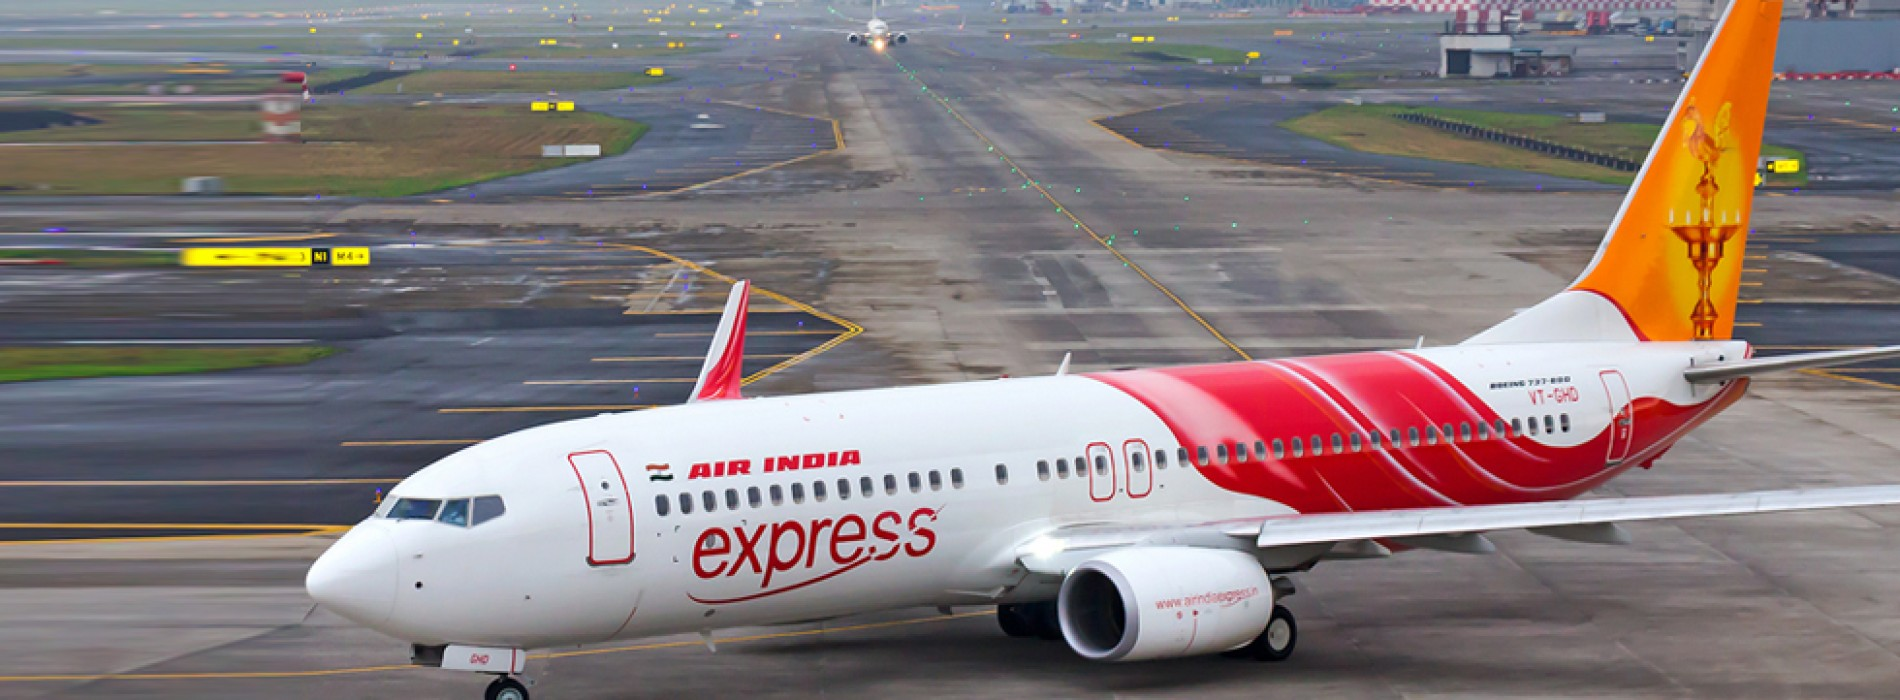 Air India Express connects Vijayawada with Mumbai